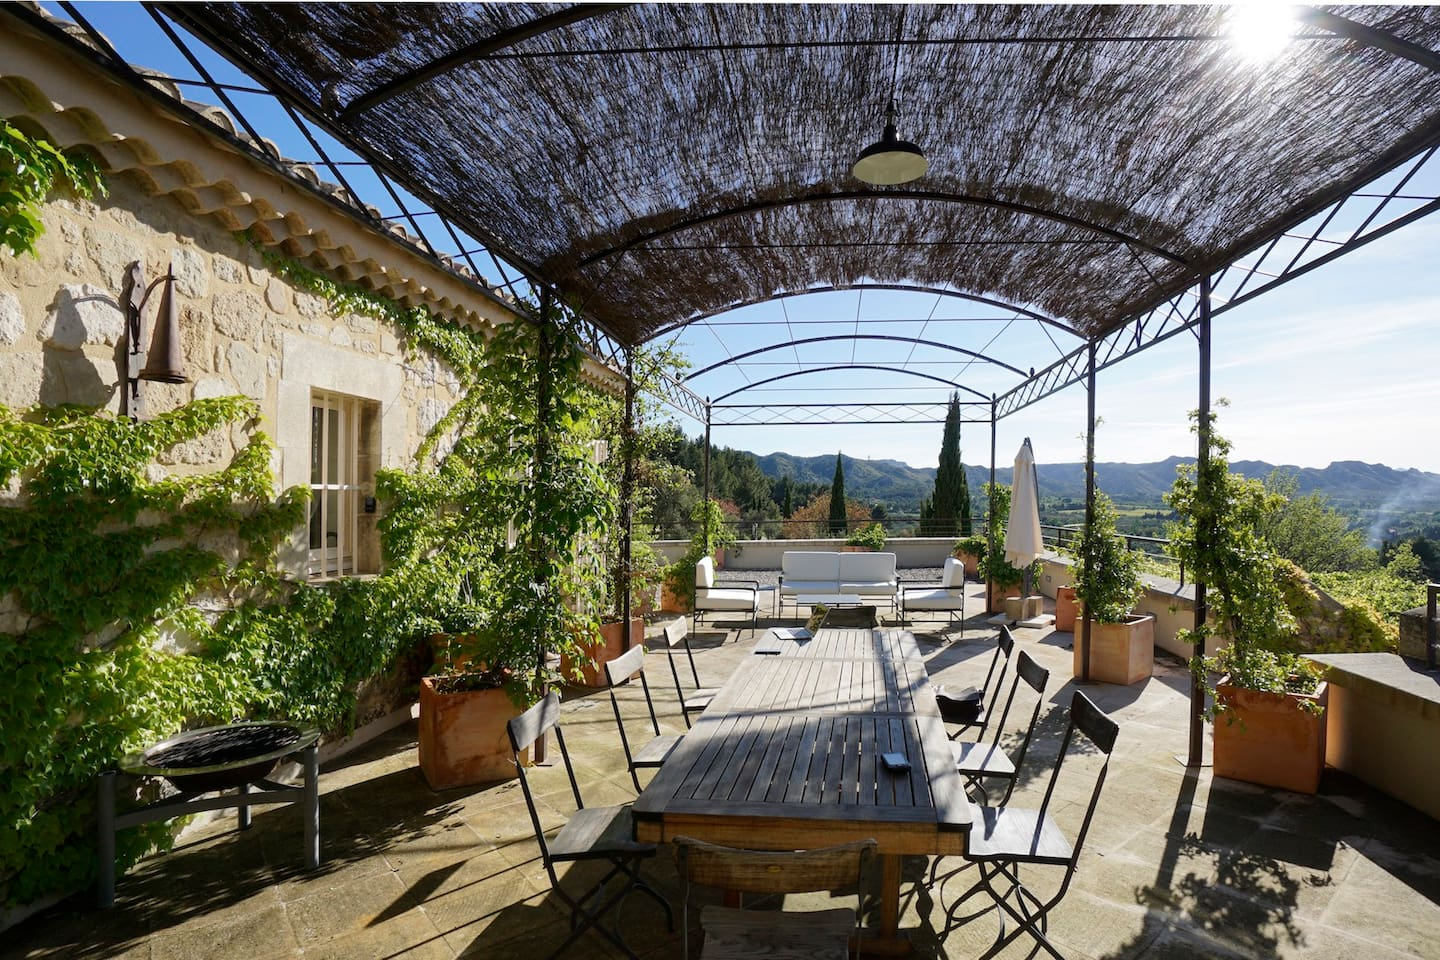 Outdoor Living in an Incredible Provence Setting